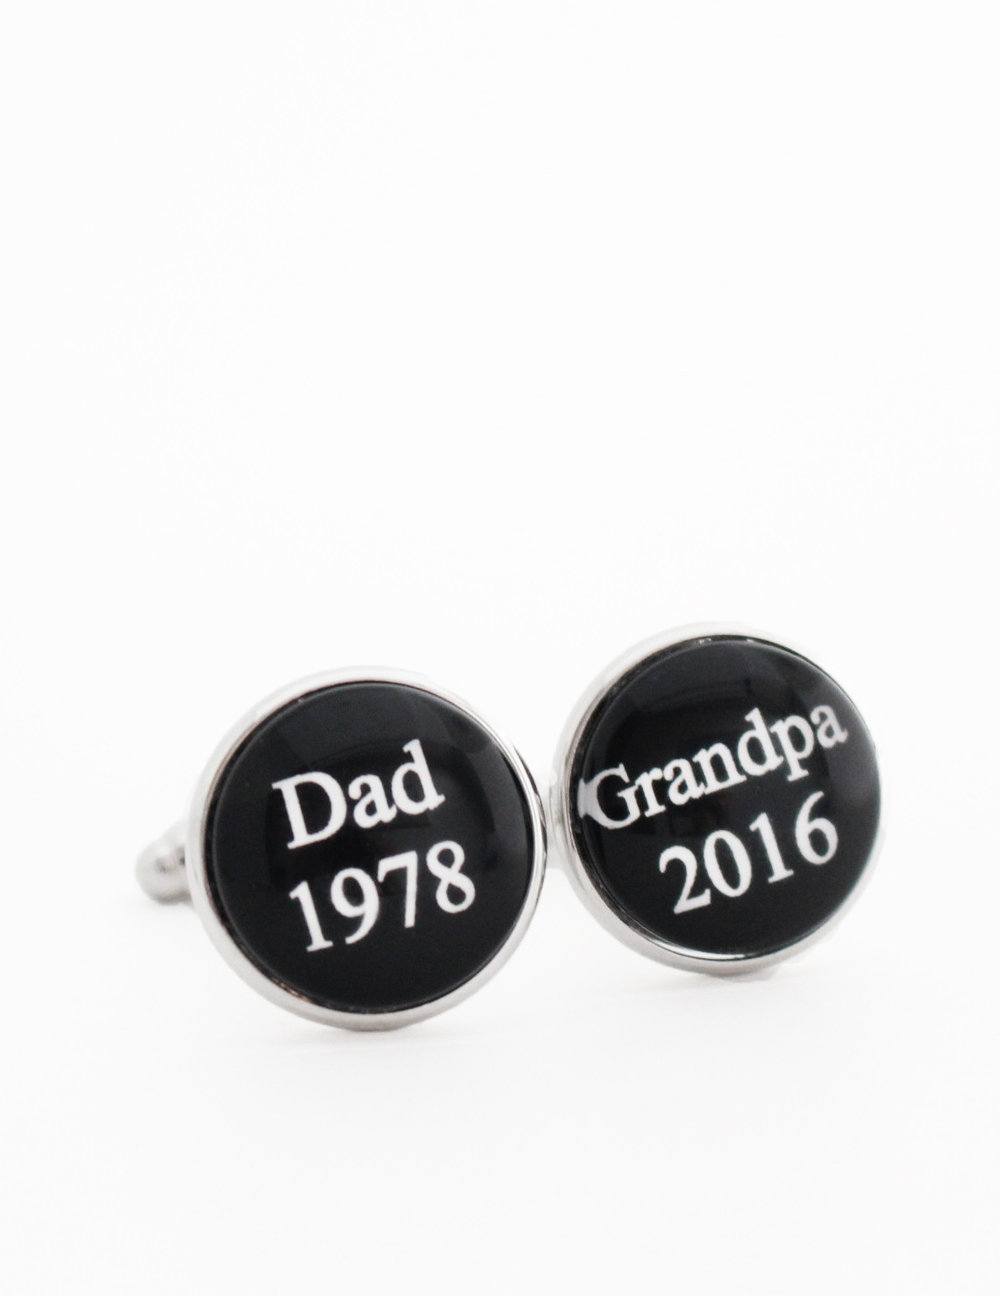 Pregnancy Reveal to Grandparents Cufflinks.jpg